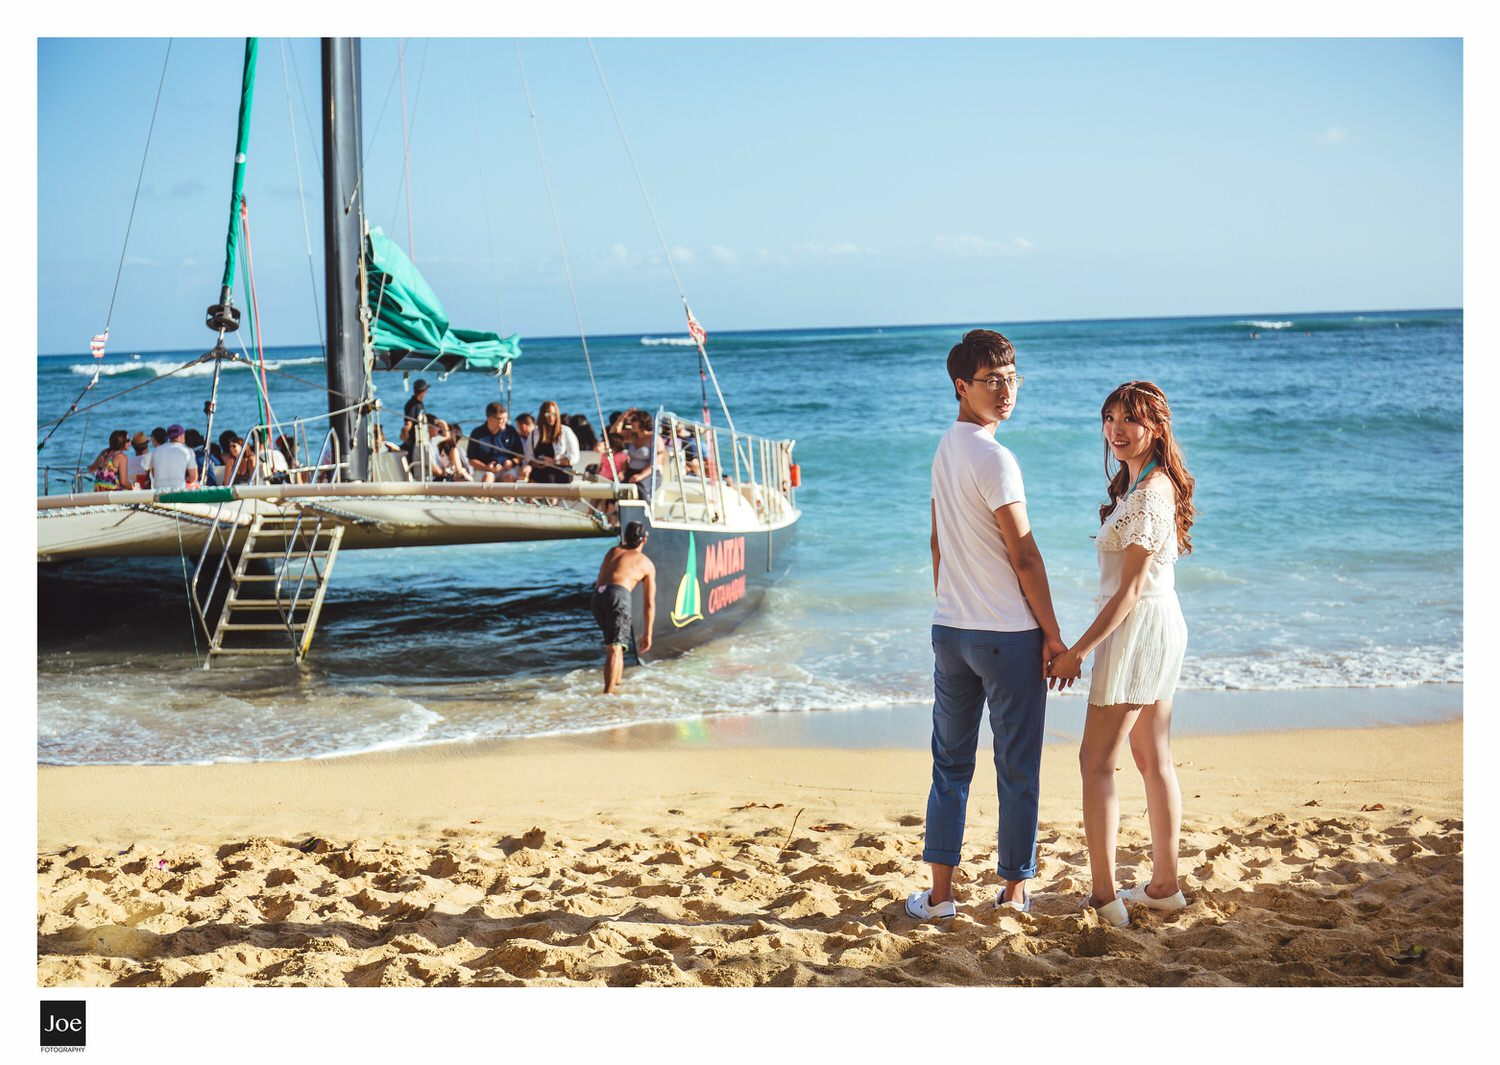 114-maitai-catamaran-hawaii-pre-wedding-tiffany-tony-joe-fotography.jpg